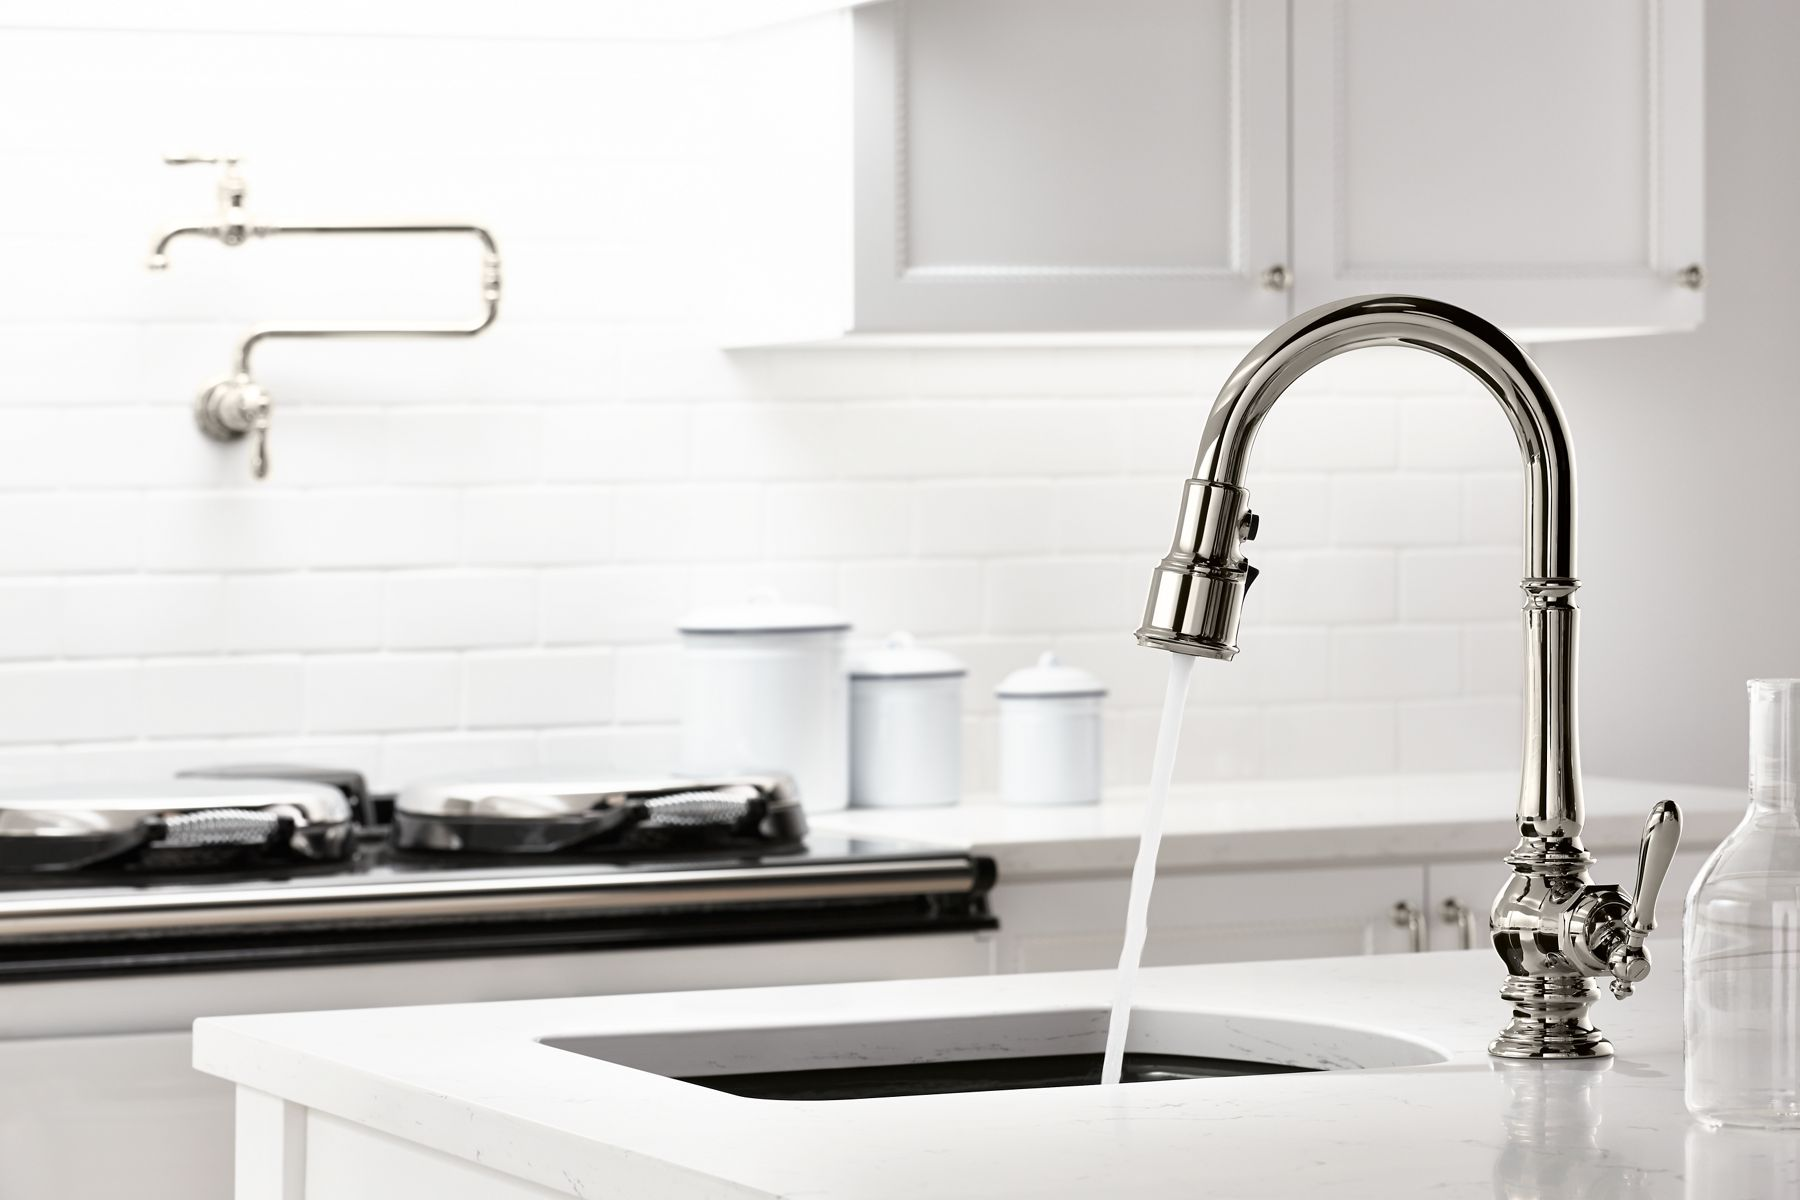 THINGS TO CONSIDER AS YOU CHOOSE YOUR KITCHEN FAUCET: